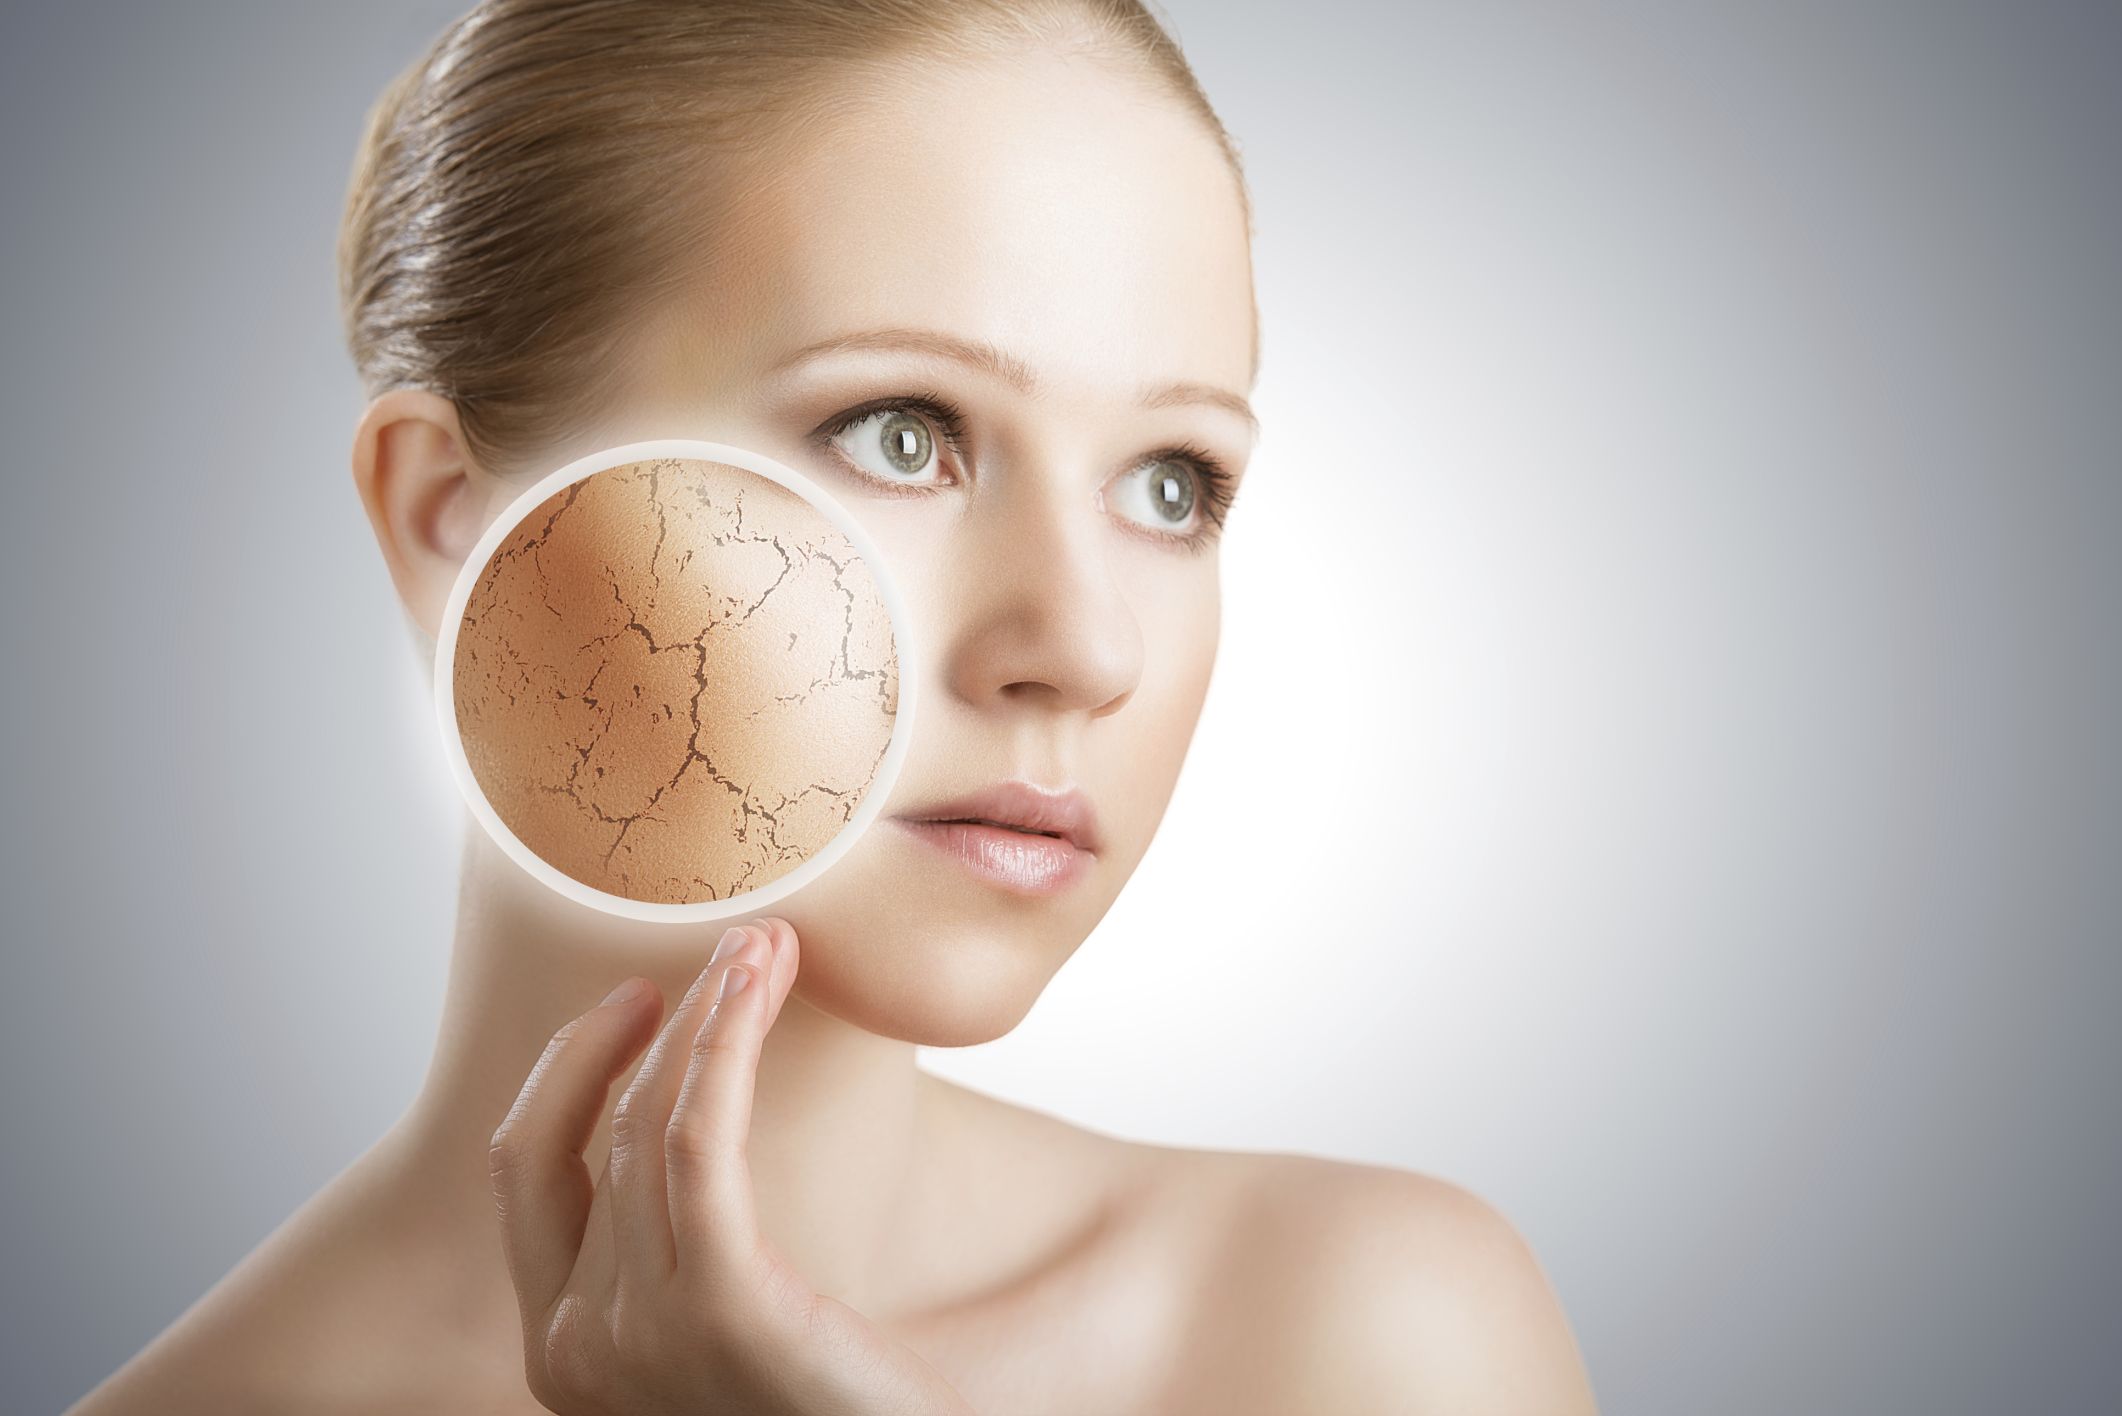 Makeup On Pinterest How To Apply Do You Have Flaky Skin? It Can Be Quite